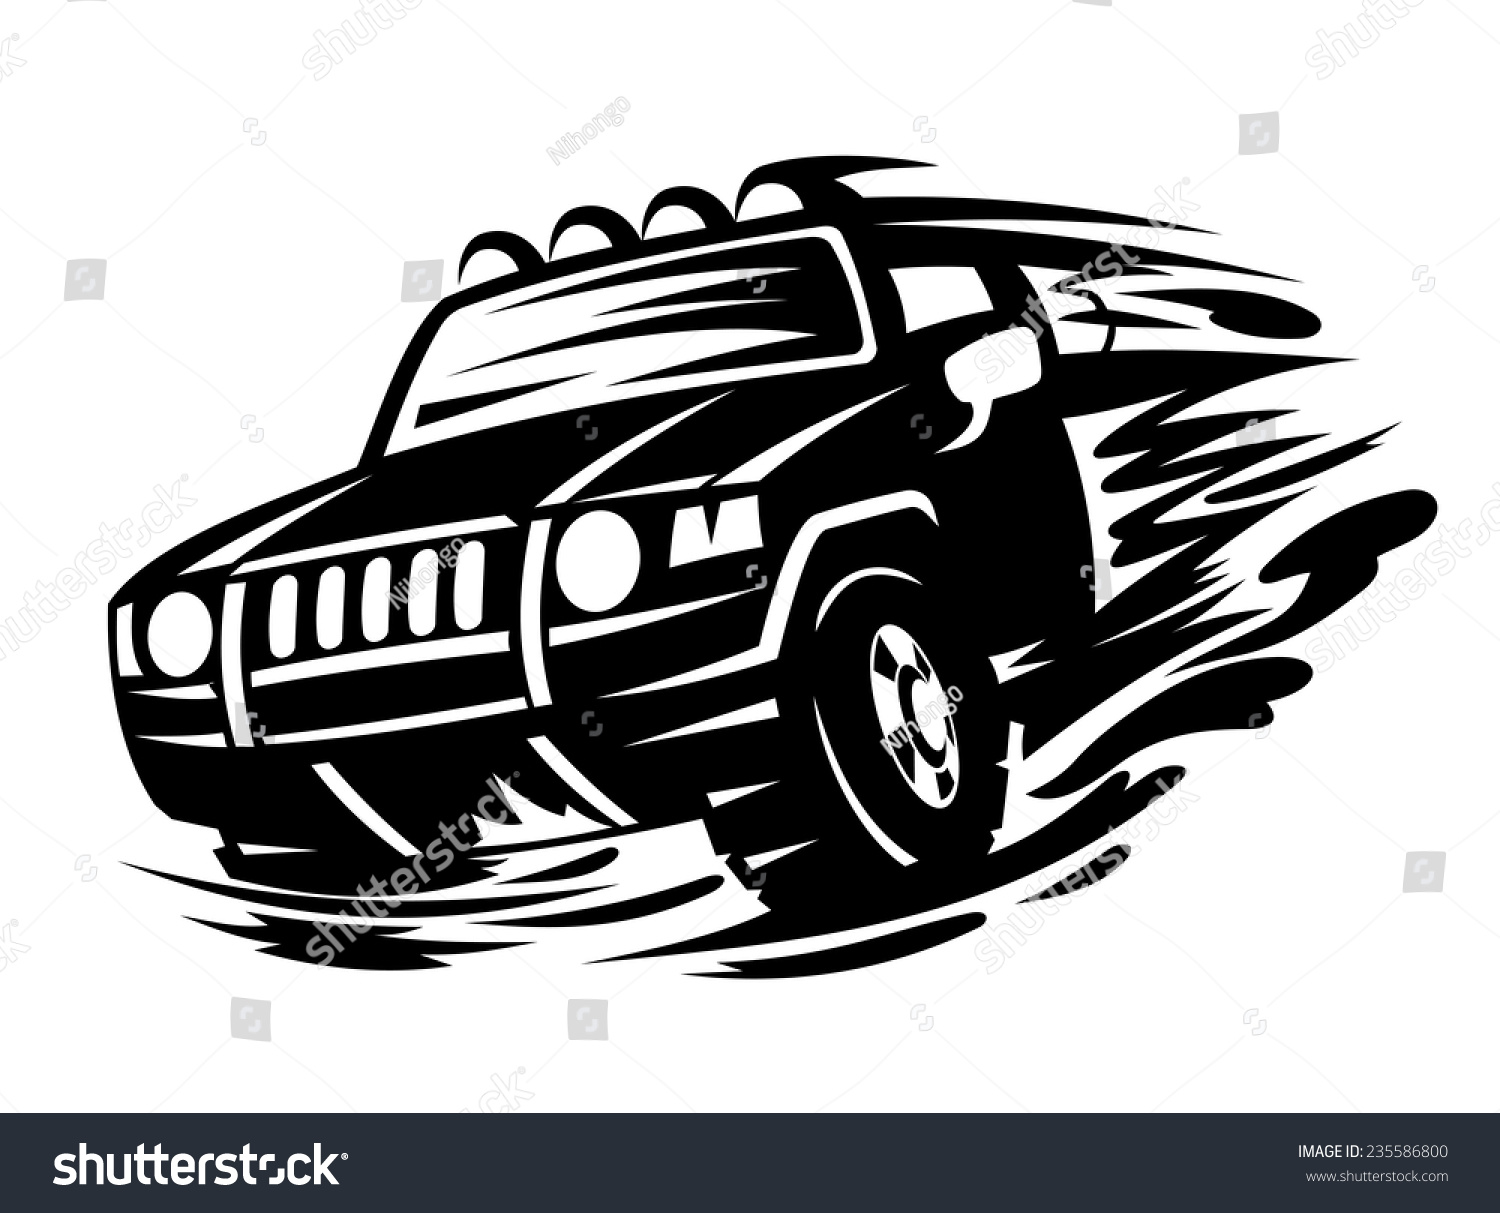 offroad vehicle black color tattoo design stock vector 235586800 shutterstock. Black Bedroom Furniture Sets. Home Design Ideas